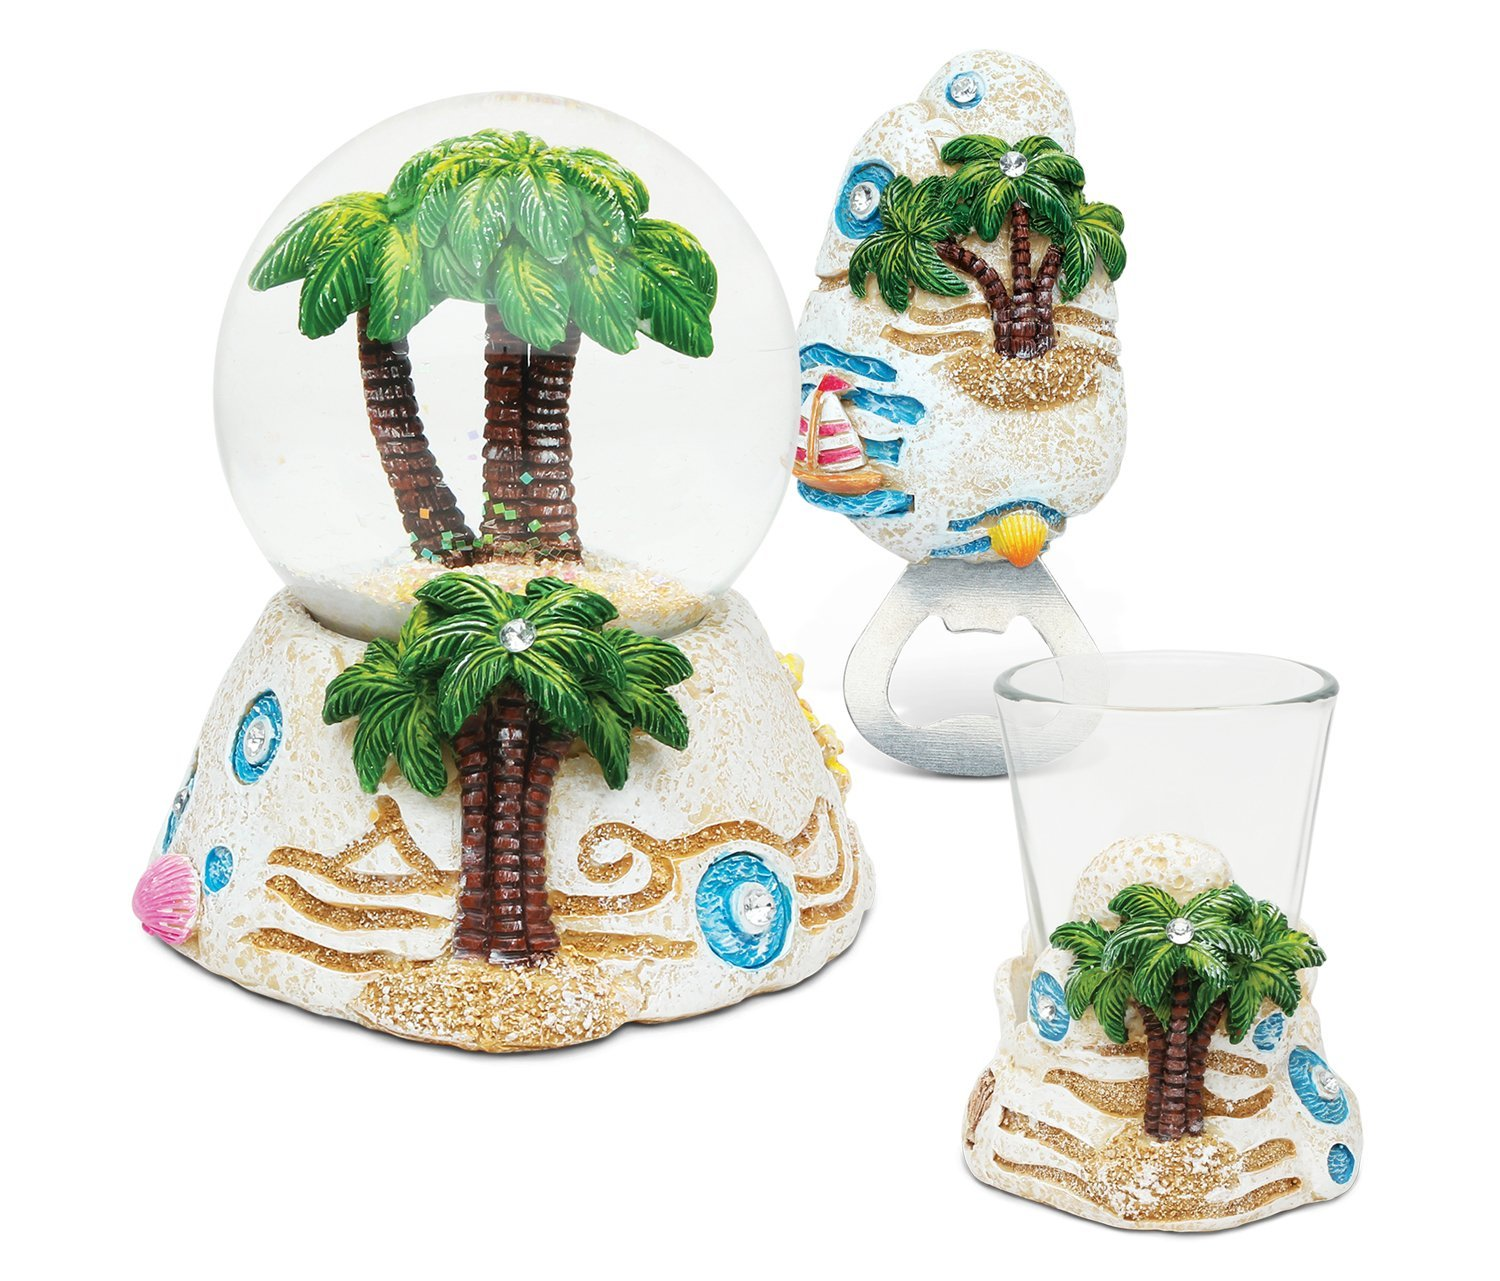 Puzzled Palm Tree Resin Stone Finish Collection including Snow Globe, Magnet Bottle Opener and Shot Glass - Unique Elegant Gift and Souvenir